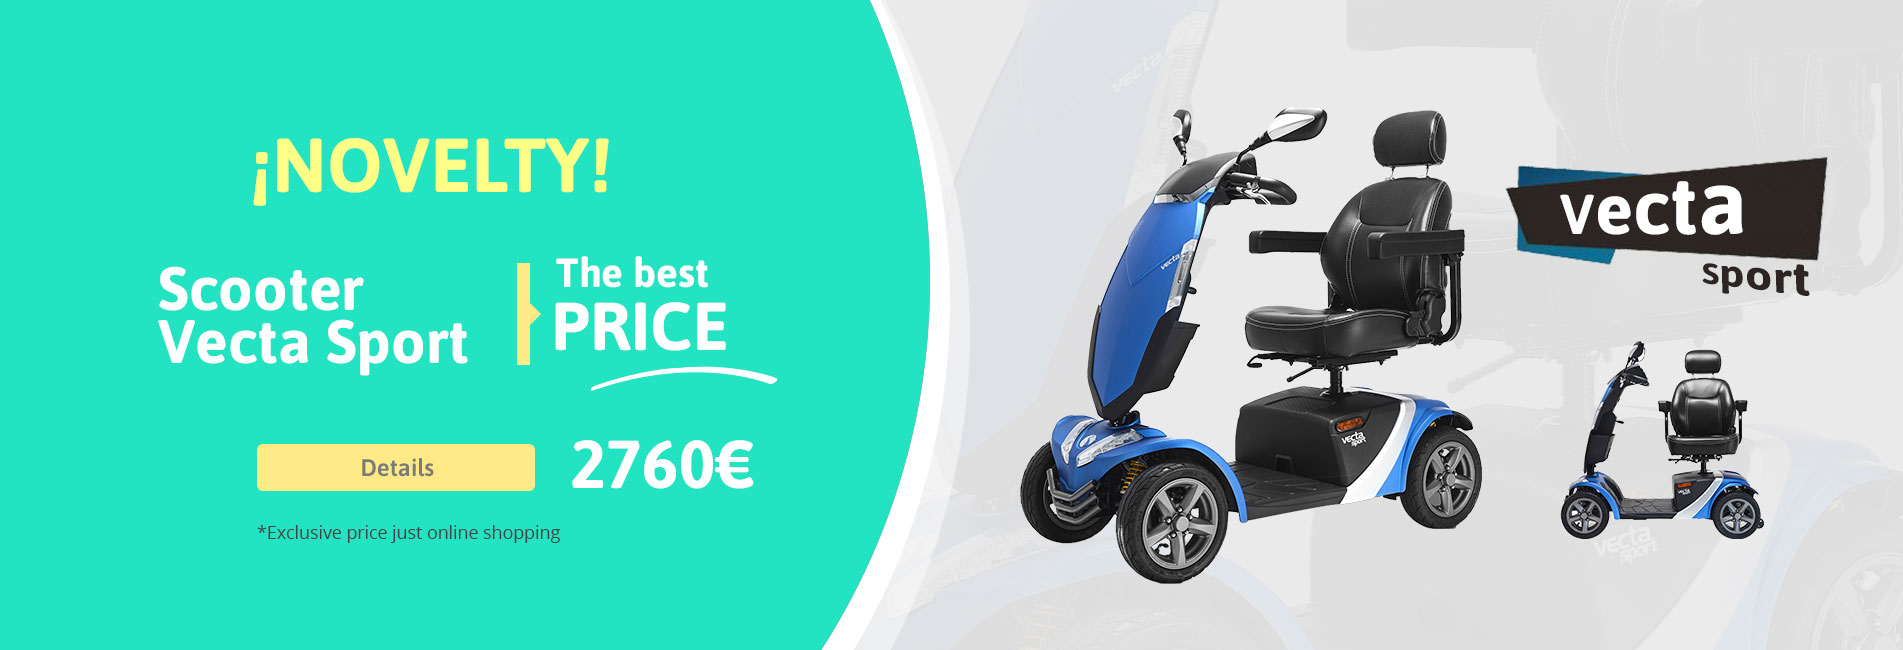 Shop Scooter Vecta Sport